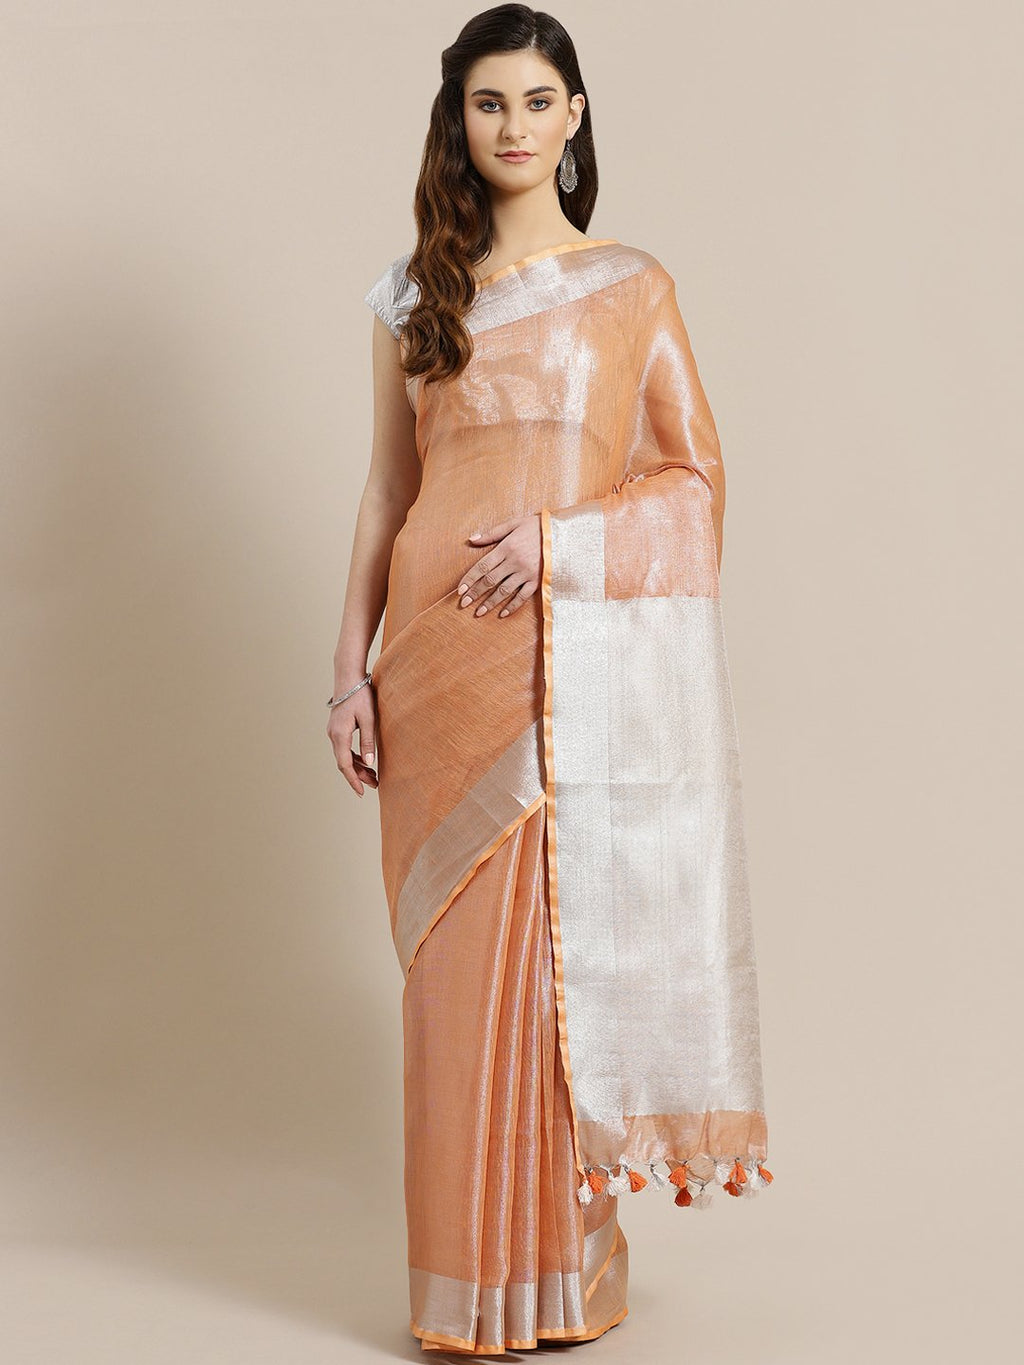 Peach-Coloured Silver Dual-Tone Handwoven Saree-Saree-Kalakari India-ALBGSA0010-Hand Woven, Sarees, Sustainable Fabrics, Tissue, Traditional Weave-[Linen,Ethnic,wear,Fashionista,Handloom,Handicraft,Indigo,blockprint,block,print,Cotton,Chanderi,Blue, latest,classy,party,bollywood,trendy,summer,style,traditional,formal,elegant,unique,style,hand,block,print, dabu,booti,gift,present,glamorous,affordable,collectible,Sari,Saree,printed, holi, Diwali, birthday, anniversary, sustainable, organic, scarf,